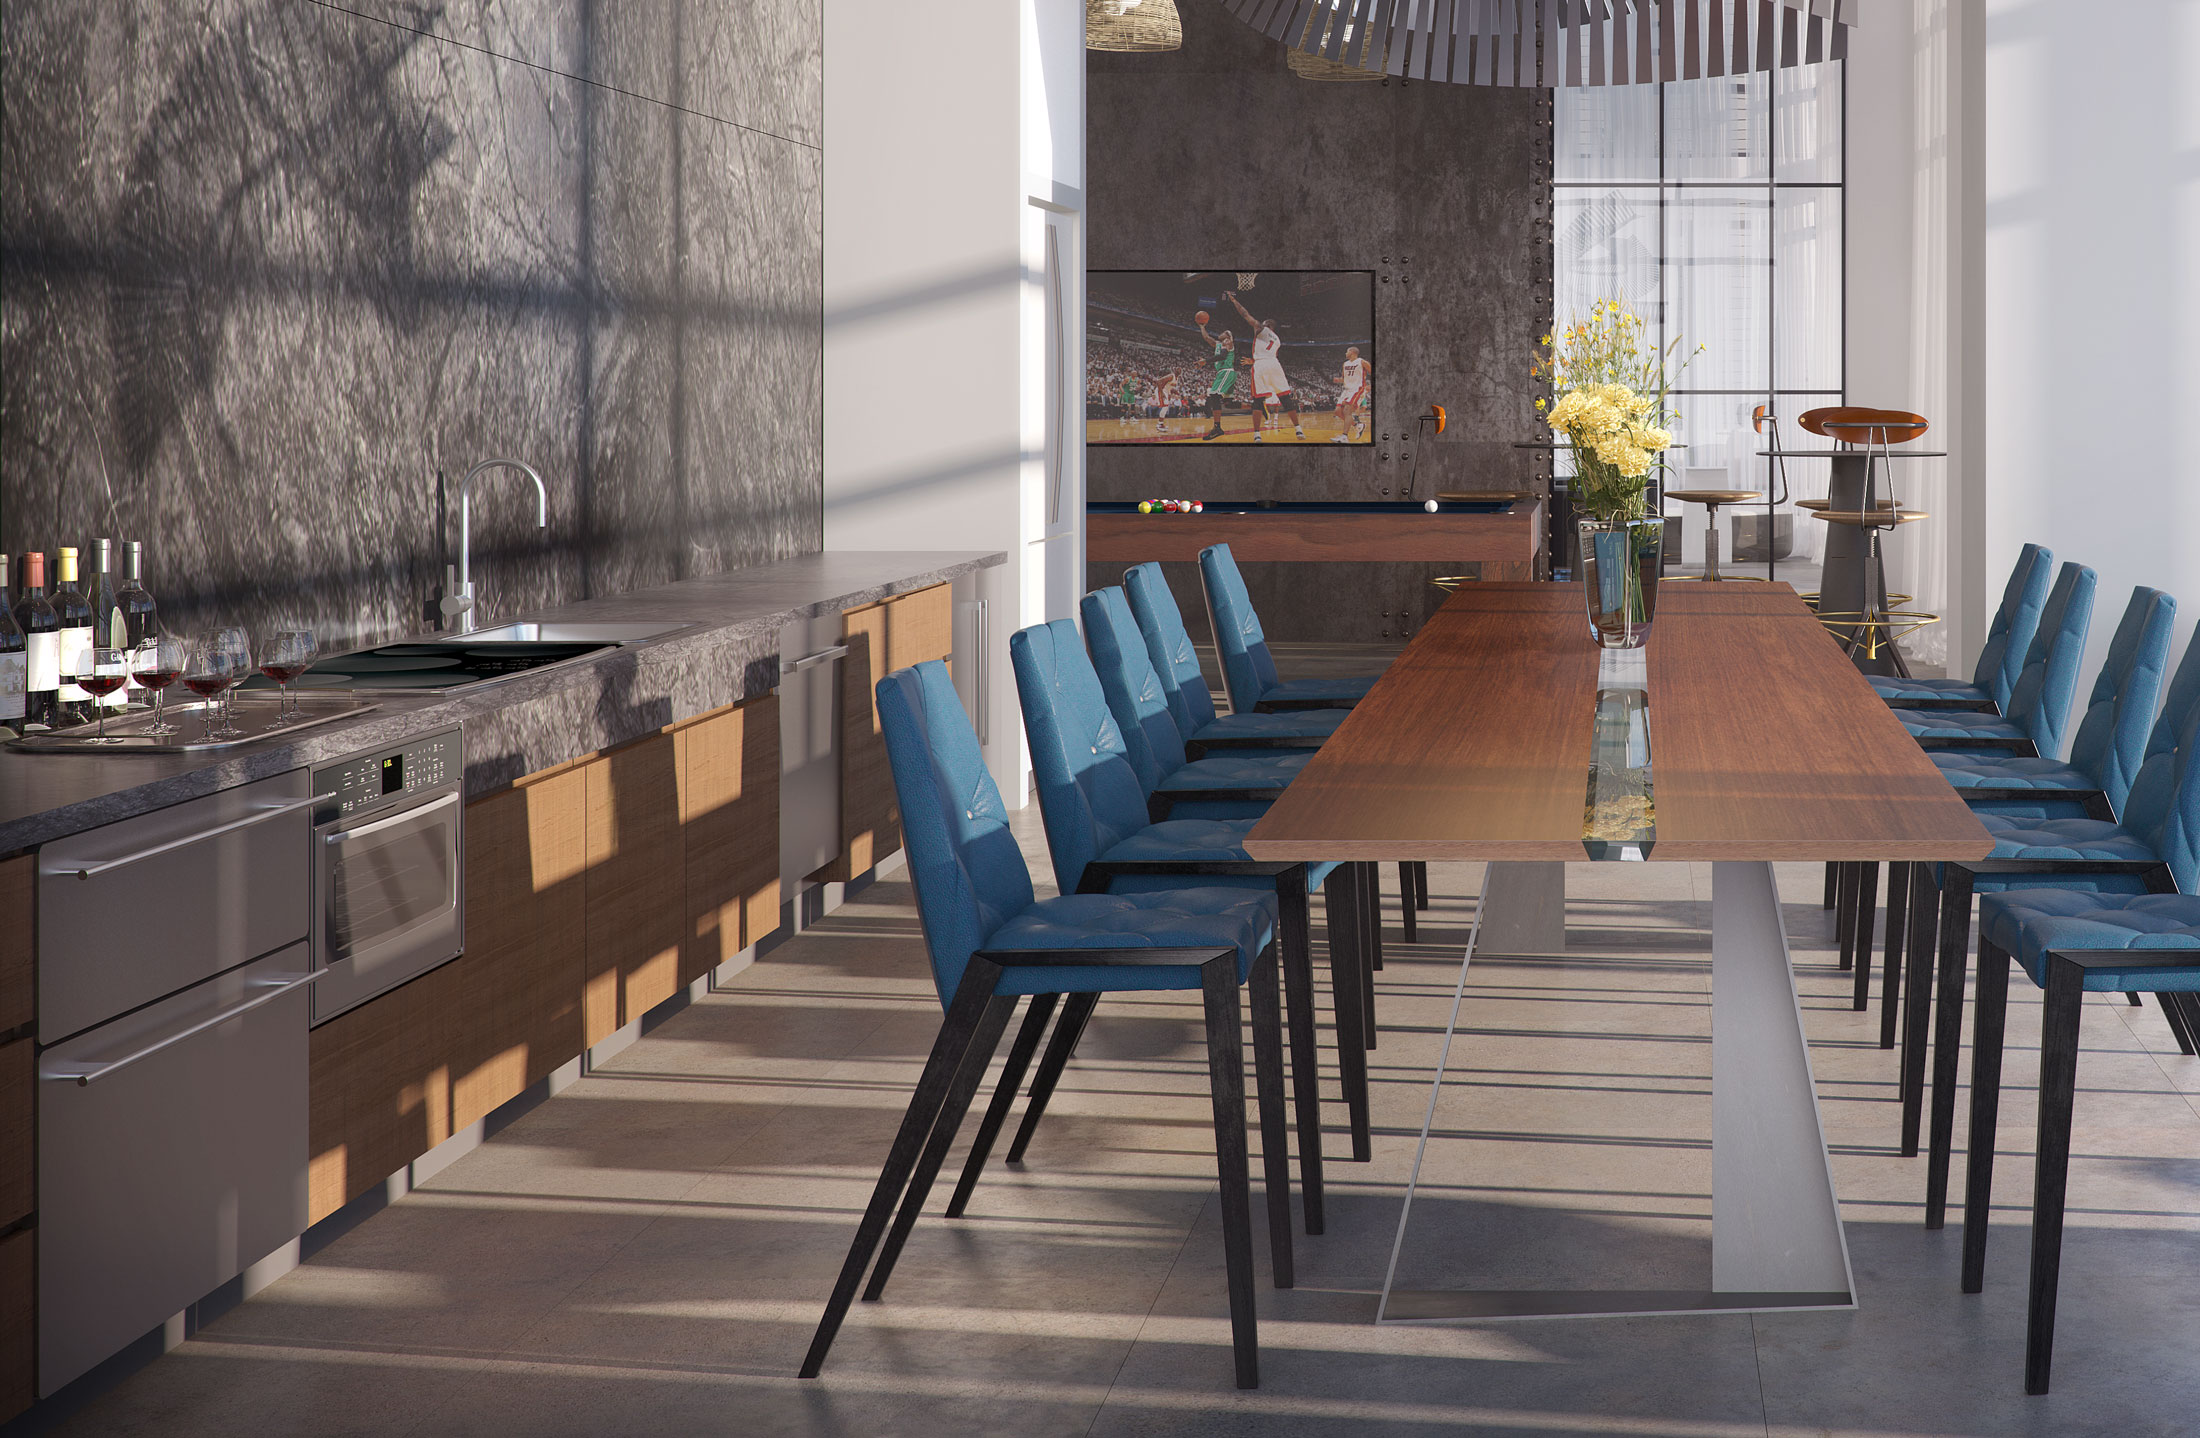 Architectural Rendering of the dining room of the Watermark Seaport project located in Boston, Massachusetts